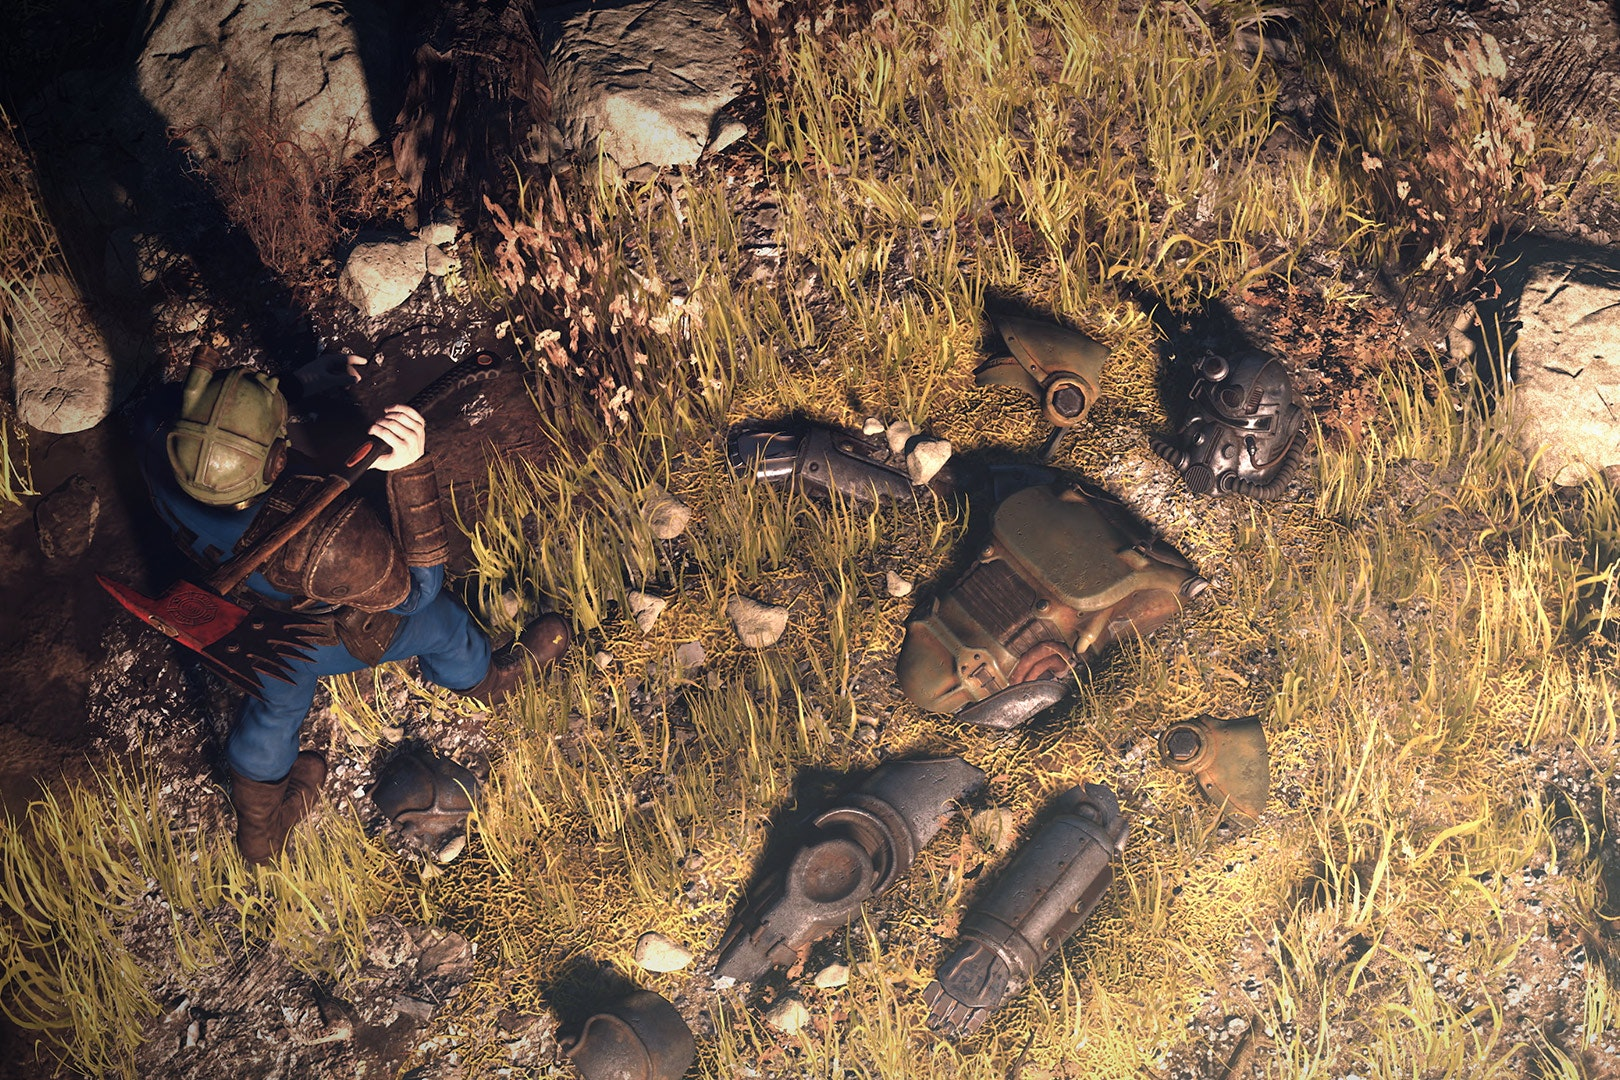 Why Are Gamers Revolting Against the 'Fallout 76' Game? // ONE37pm